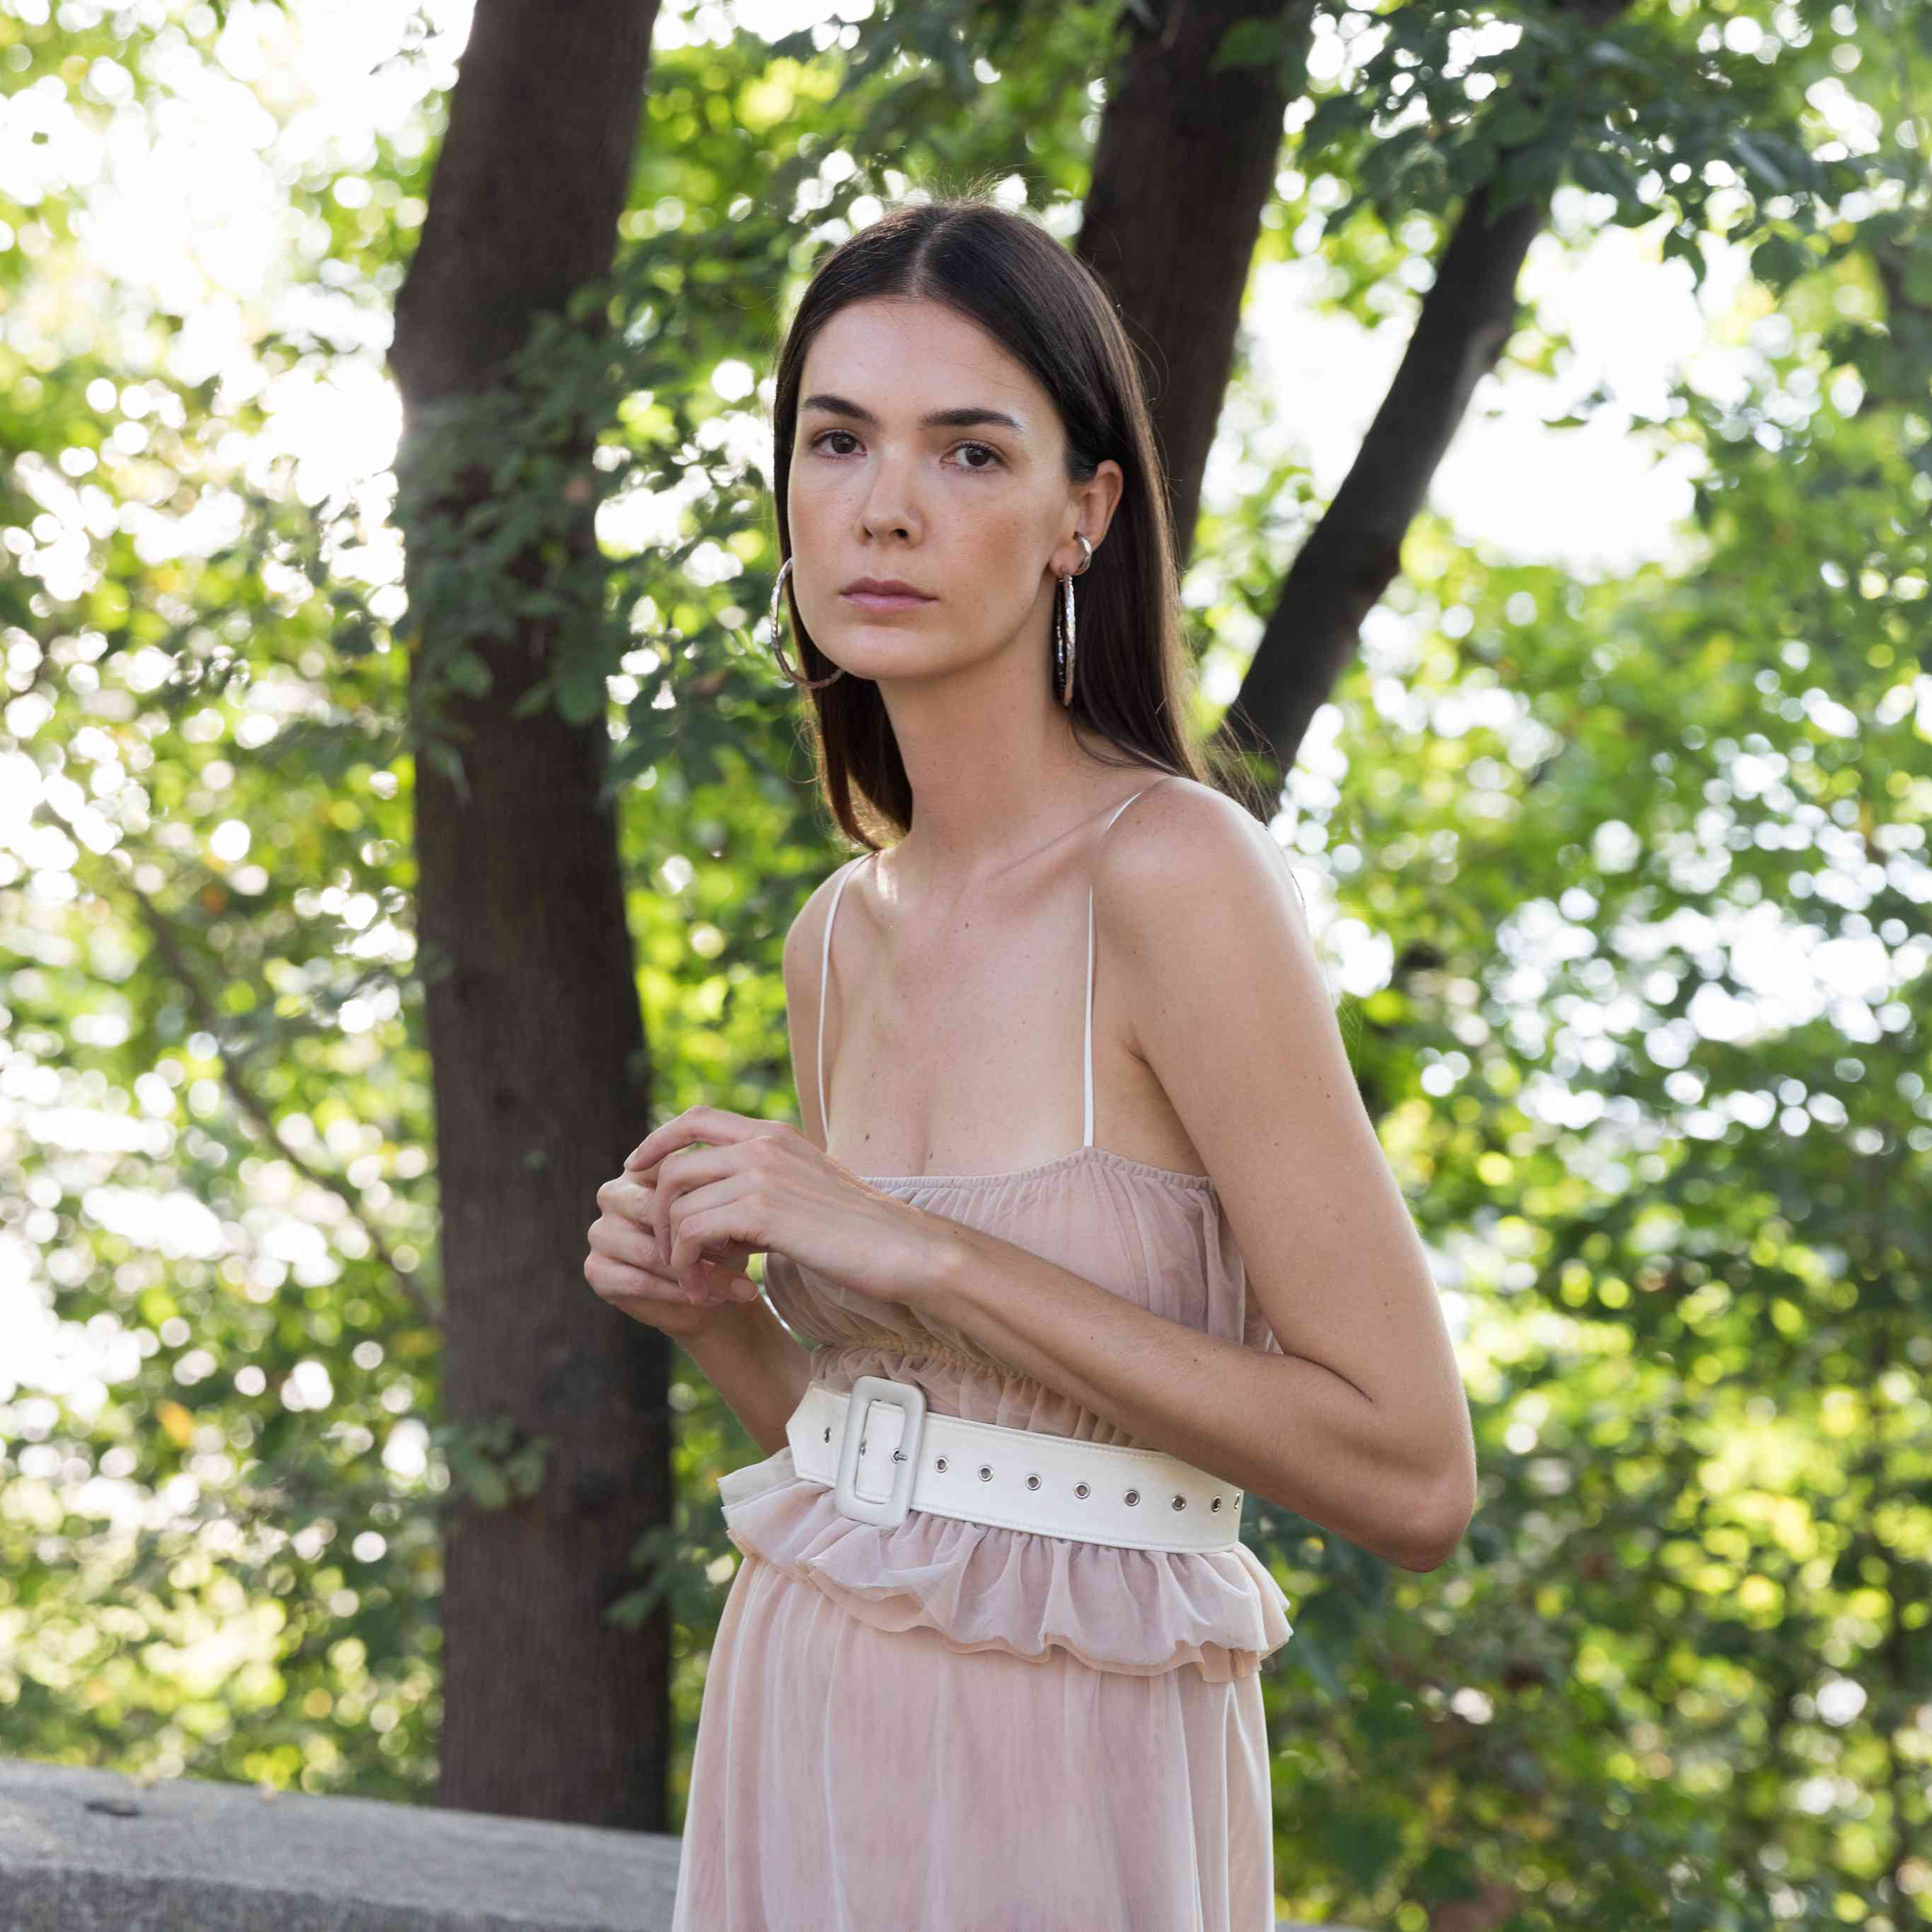 Model in smocked blush top and skirt